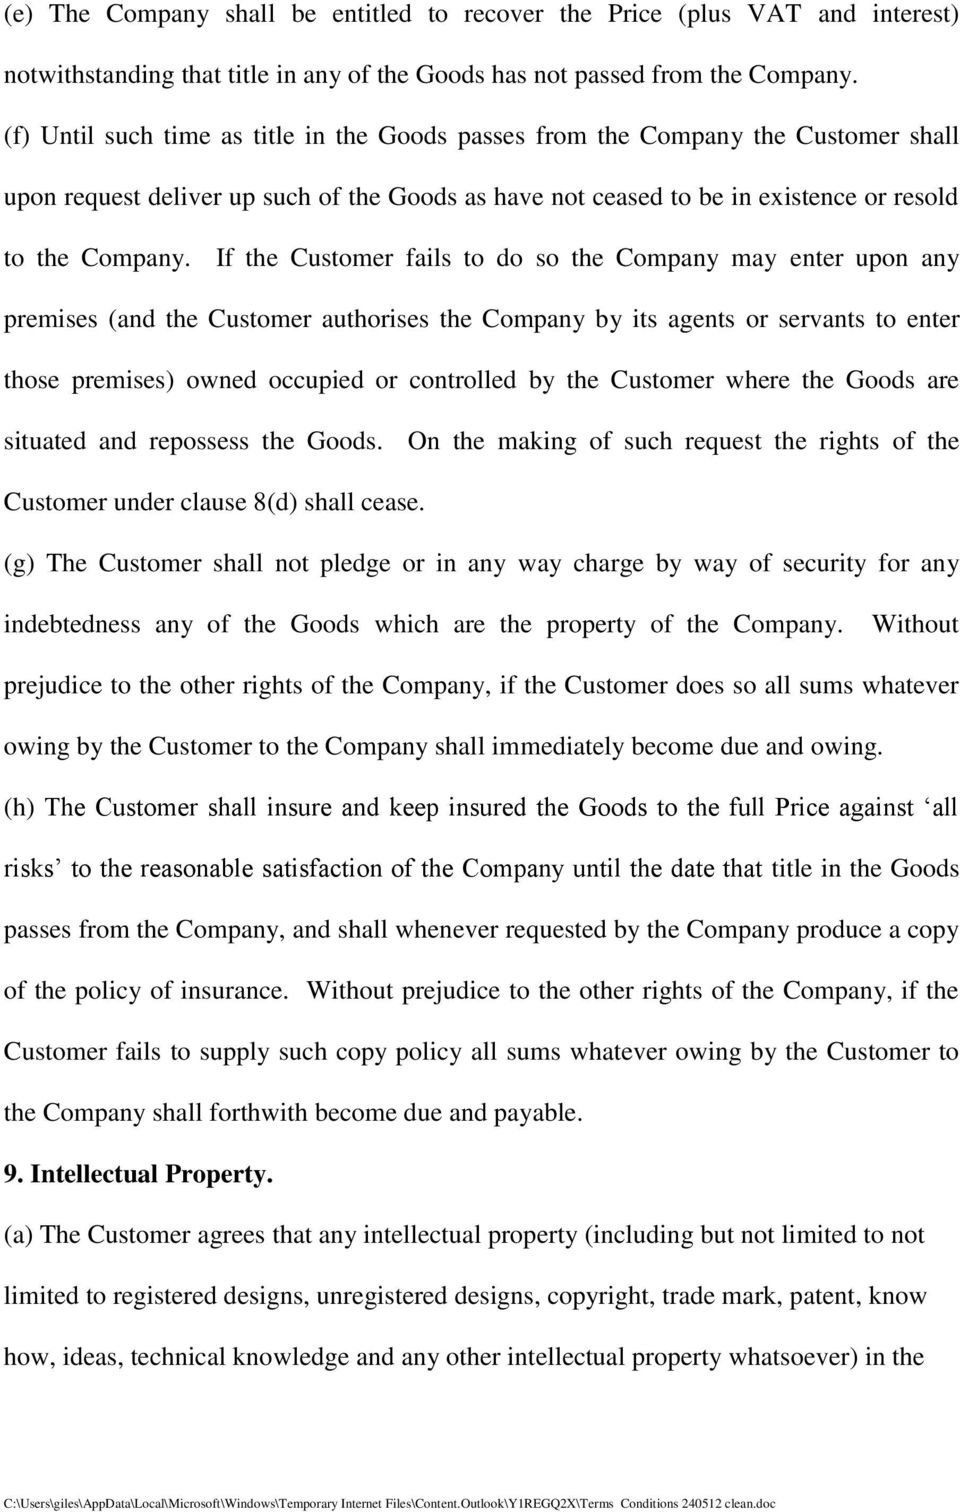 If the Customer fails to do so the Company may enter upon any premises (and the Customer authorises the Company by its agents or servants to enter those premises) owned occupied or controlled by the